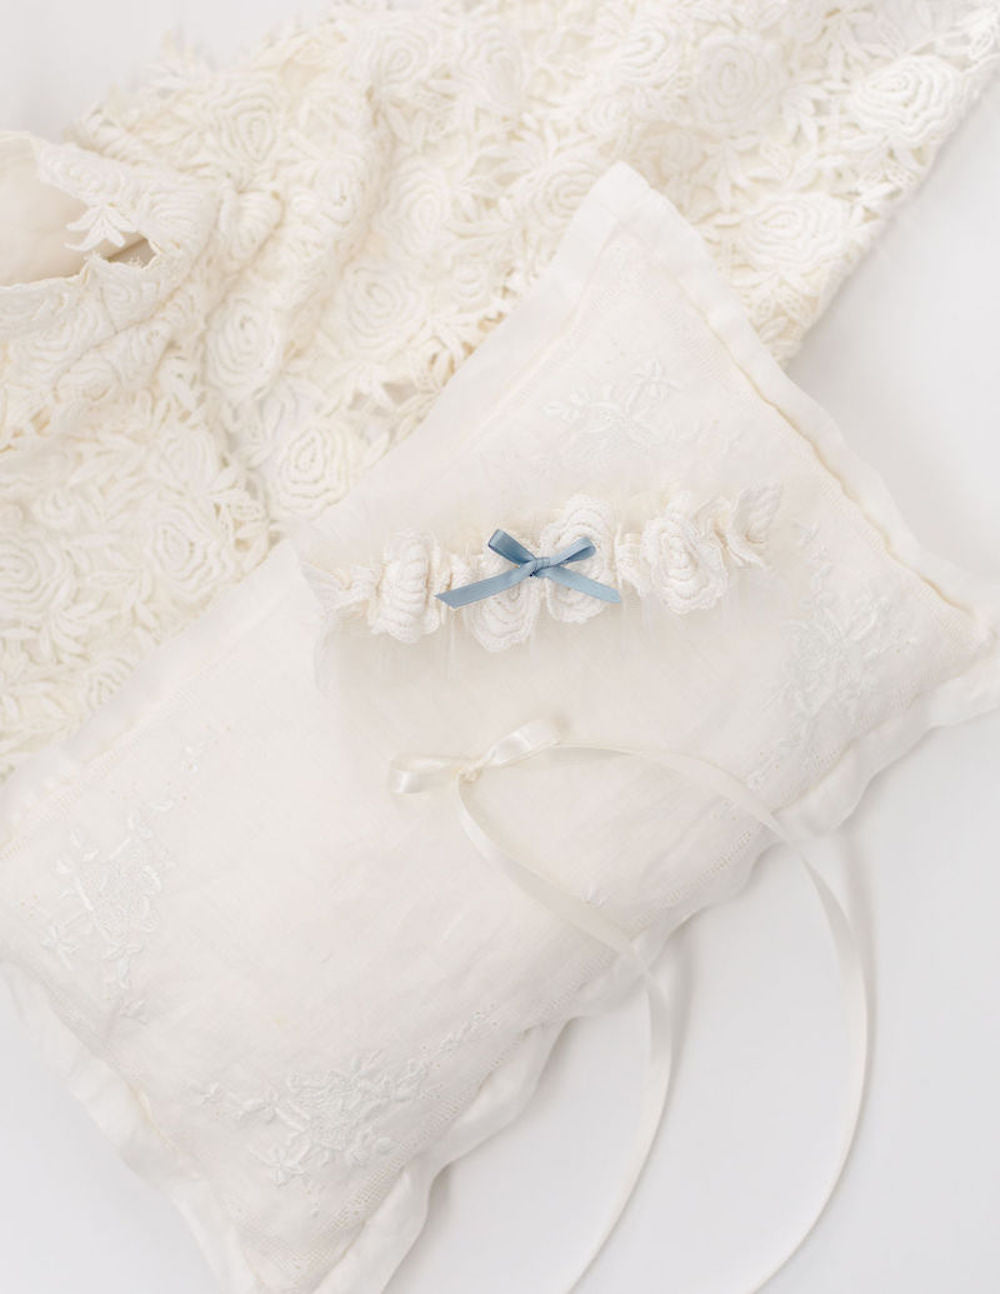 custom wedding garter heirloom and ring pillow made from grandmother's handkerchief by The Garter Girl